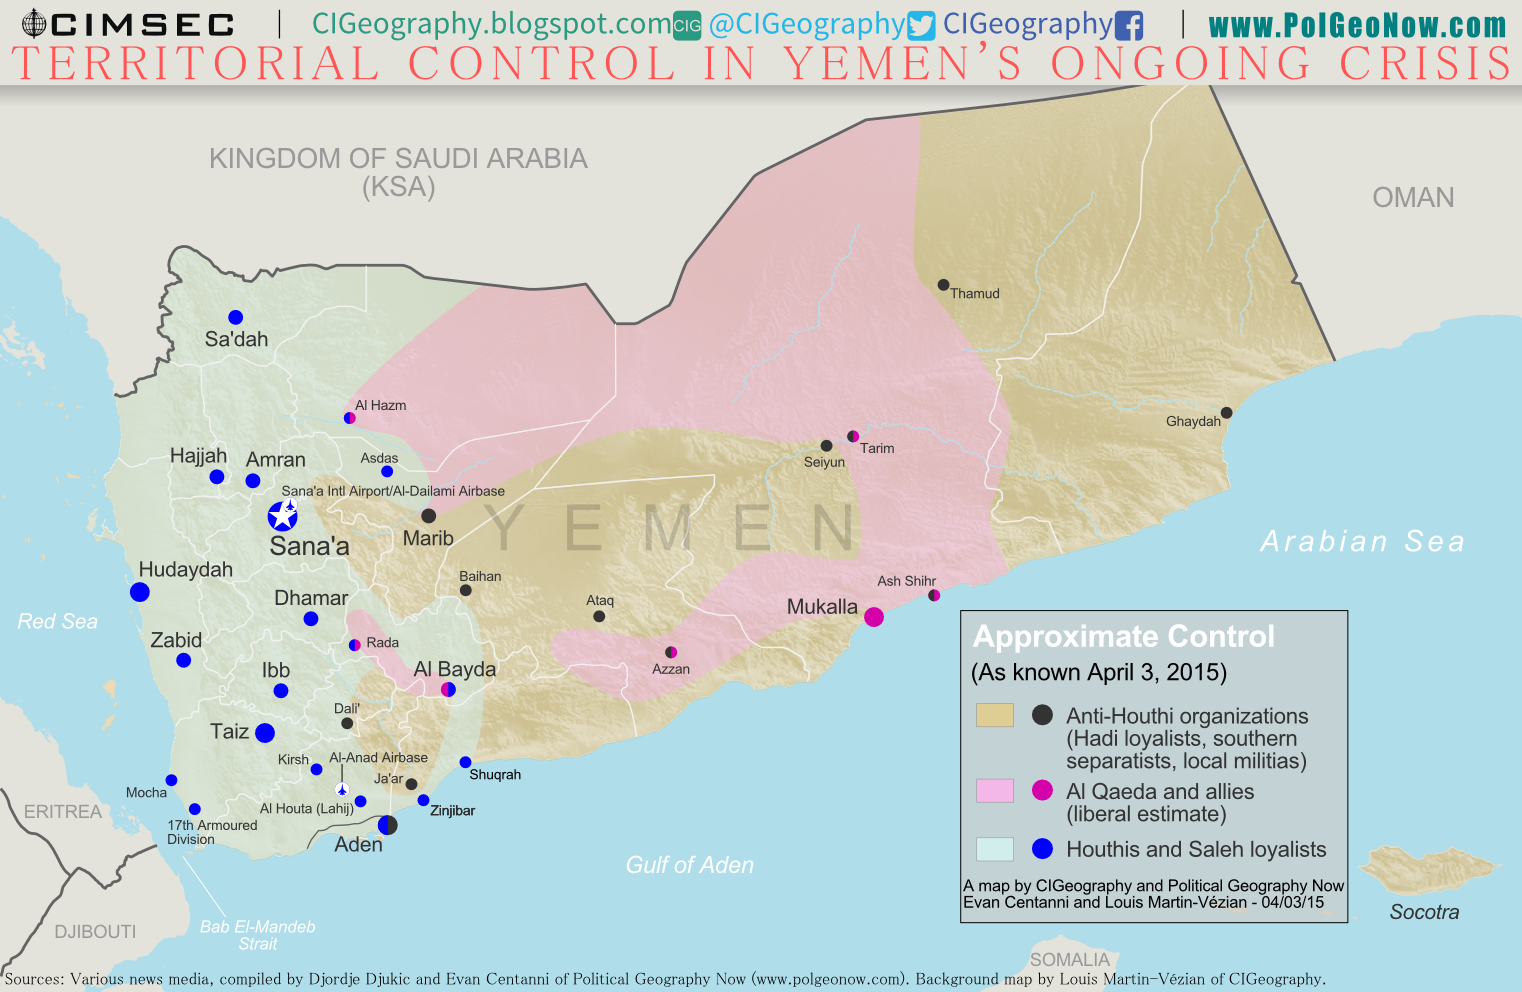 Recently the Republic of Yemen has collapsed in a violent three way